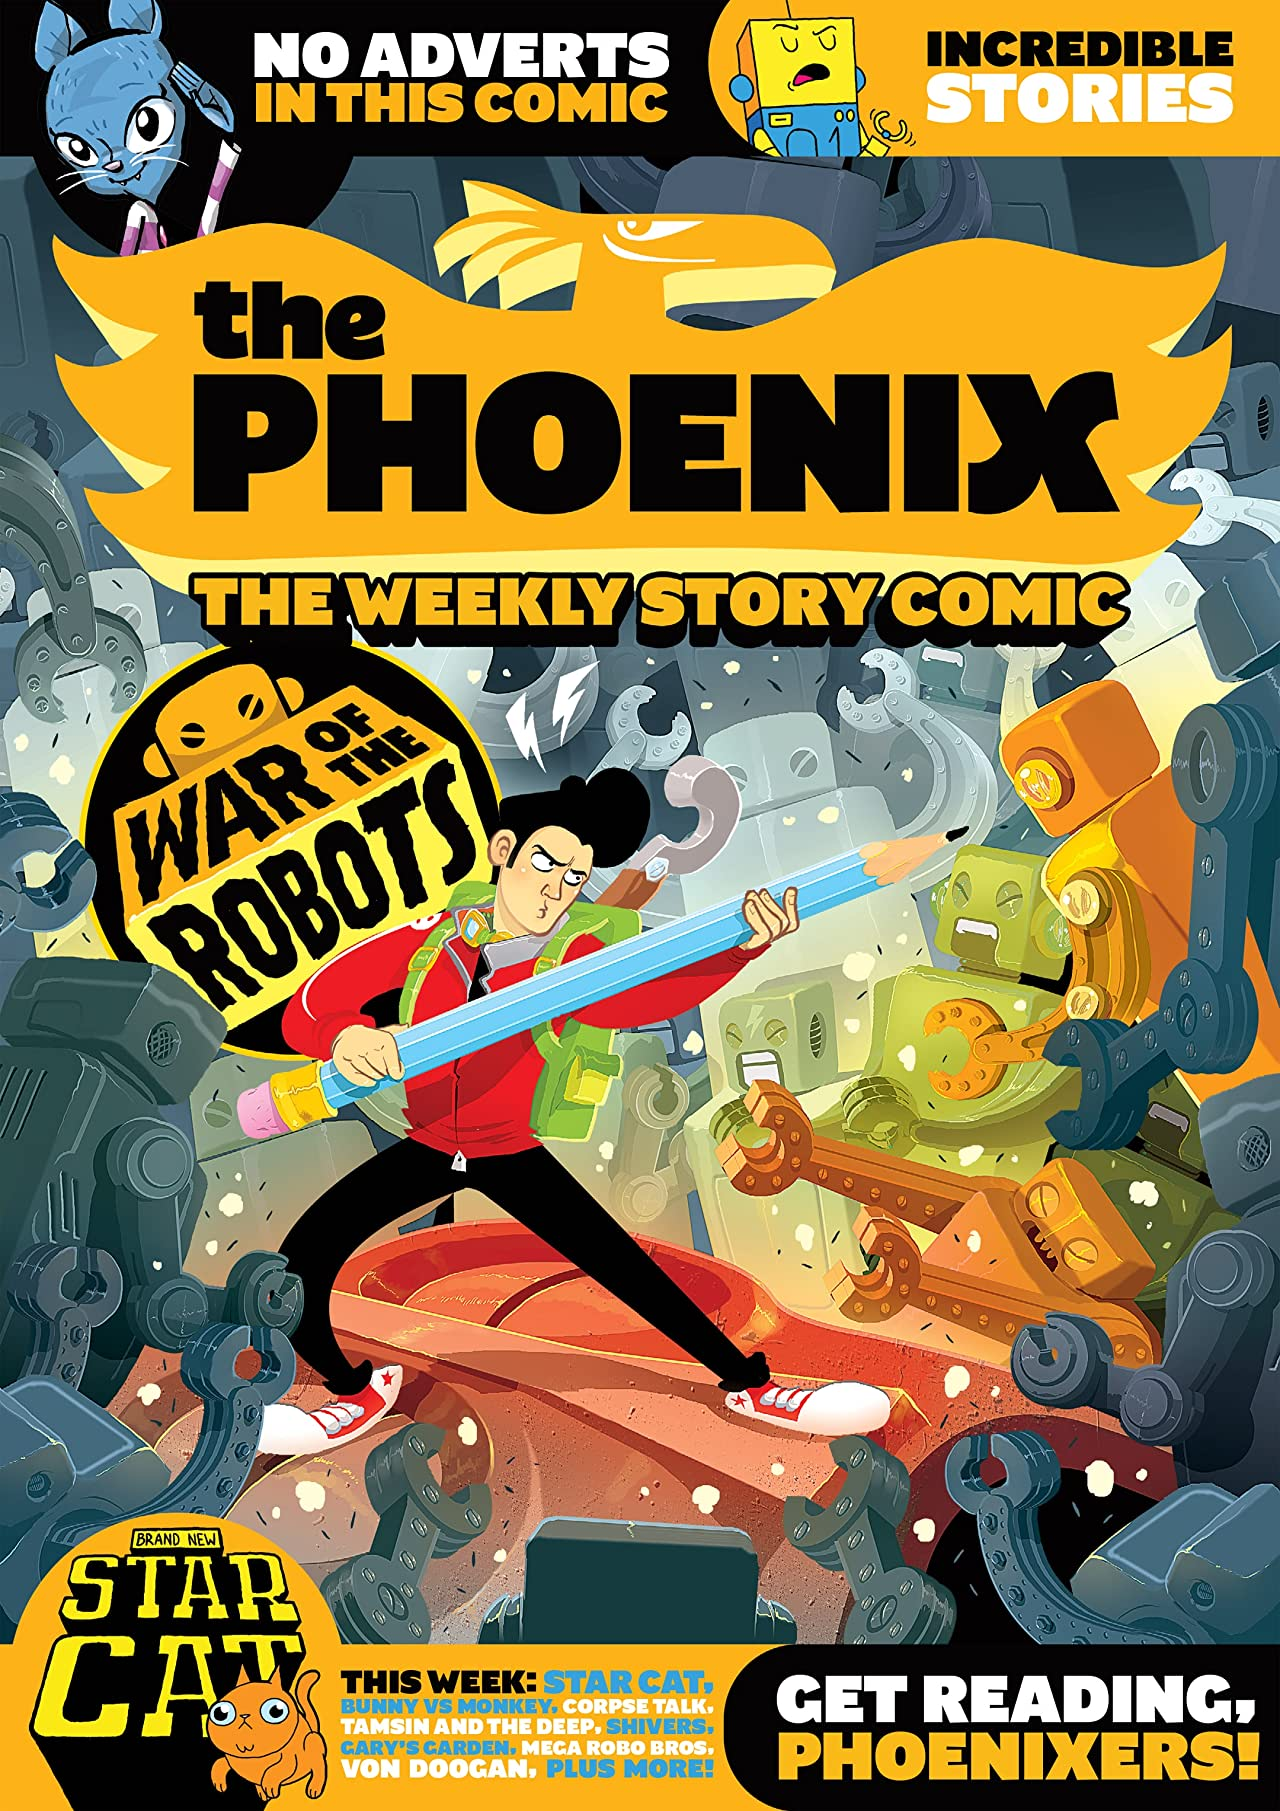 The Phoenix #119: The Weekly Story Comic